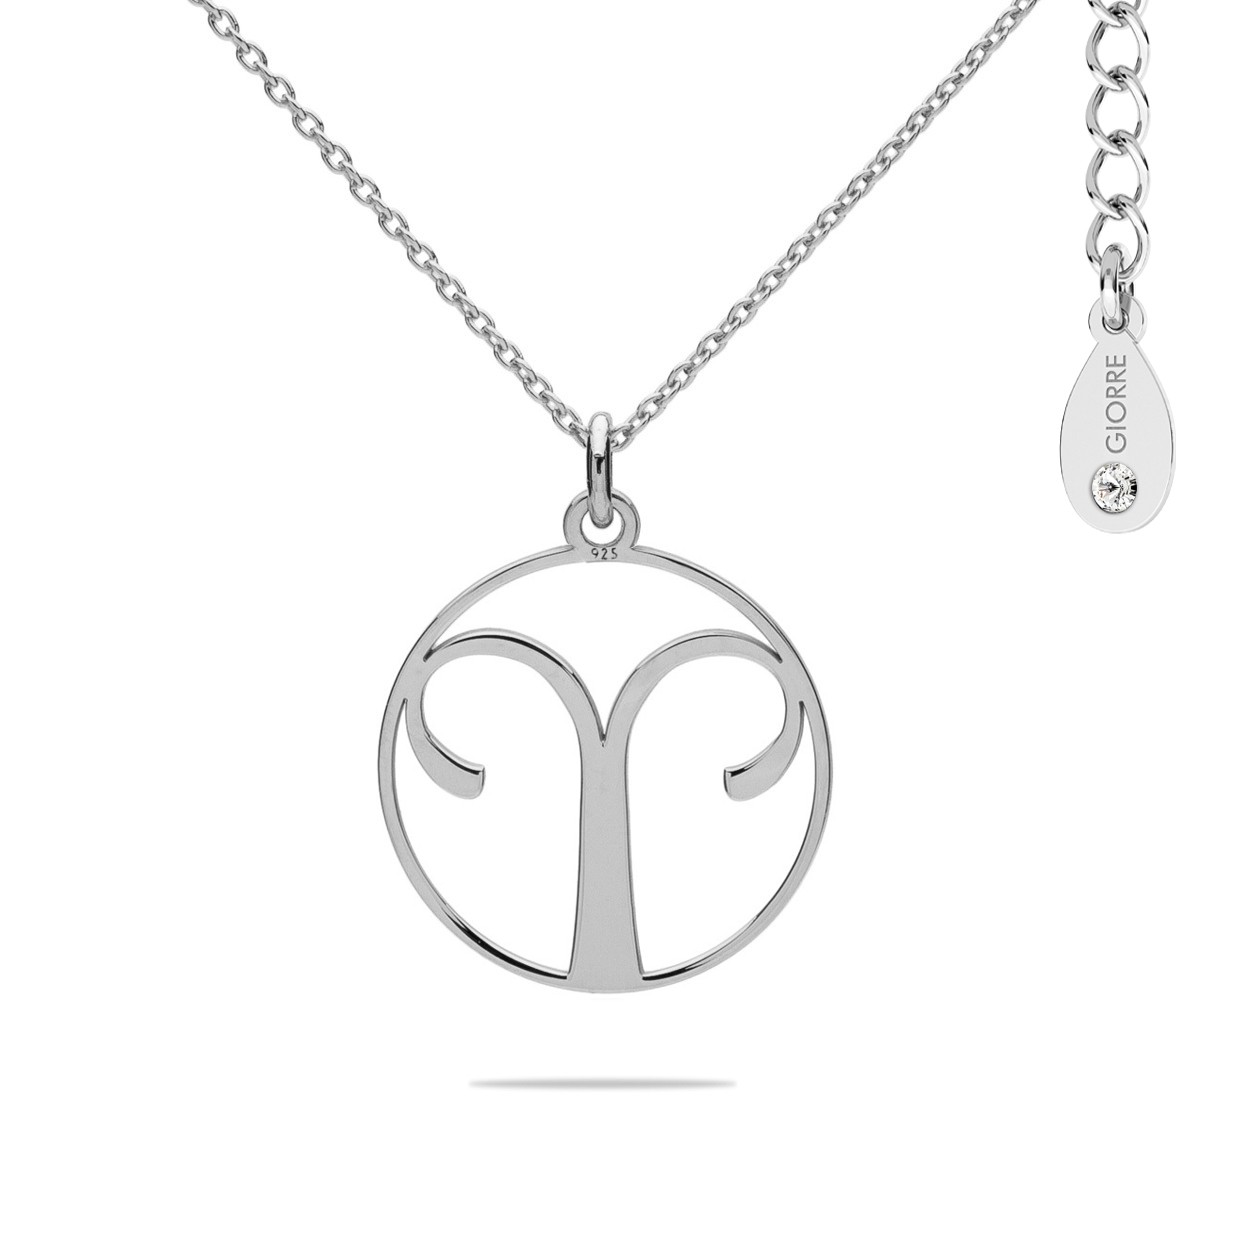 Aries zodiac sign necklace with Swarovski Crystaals sterling silver 925